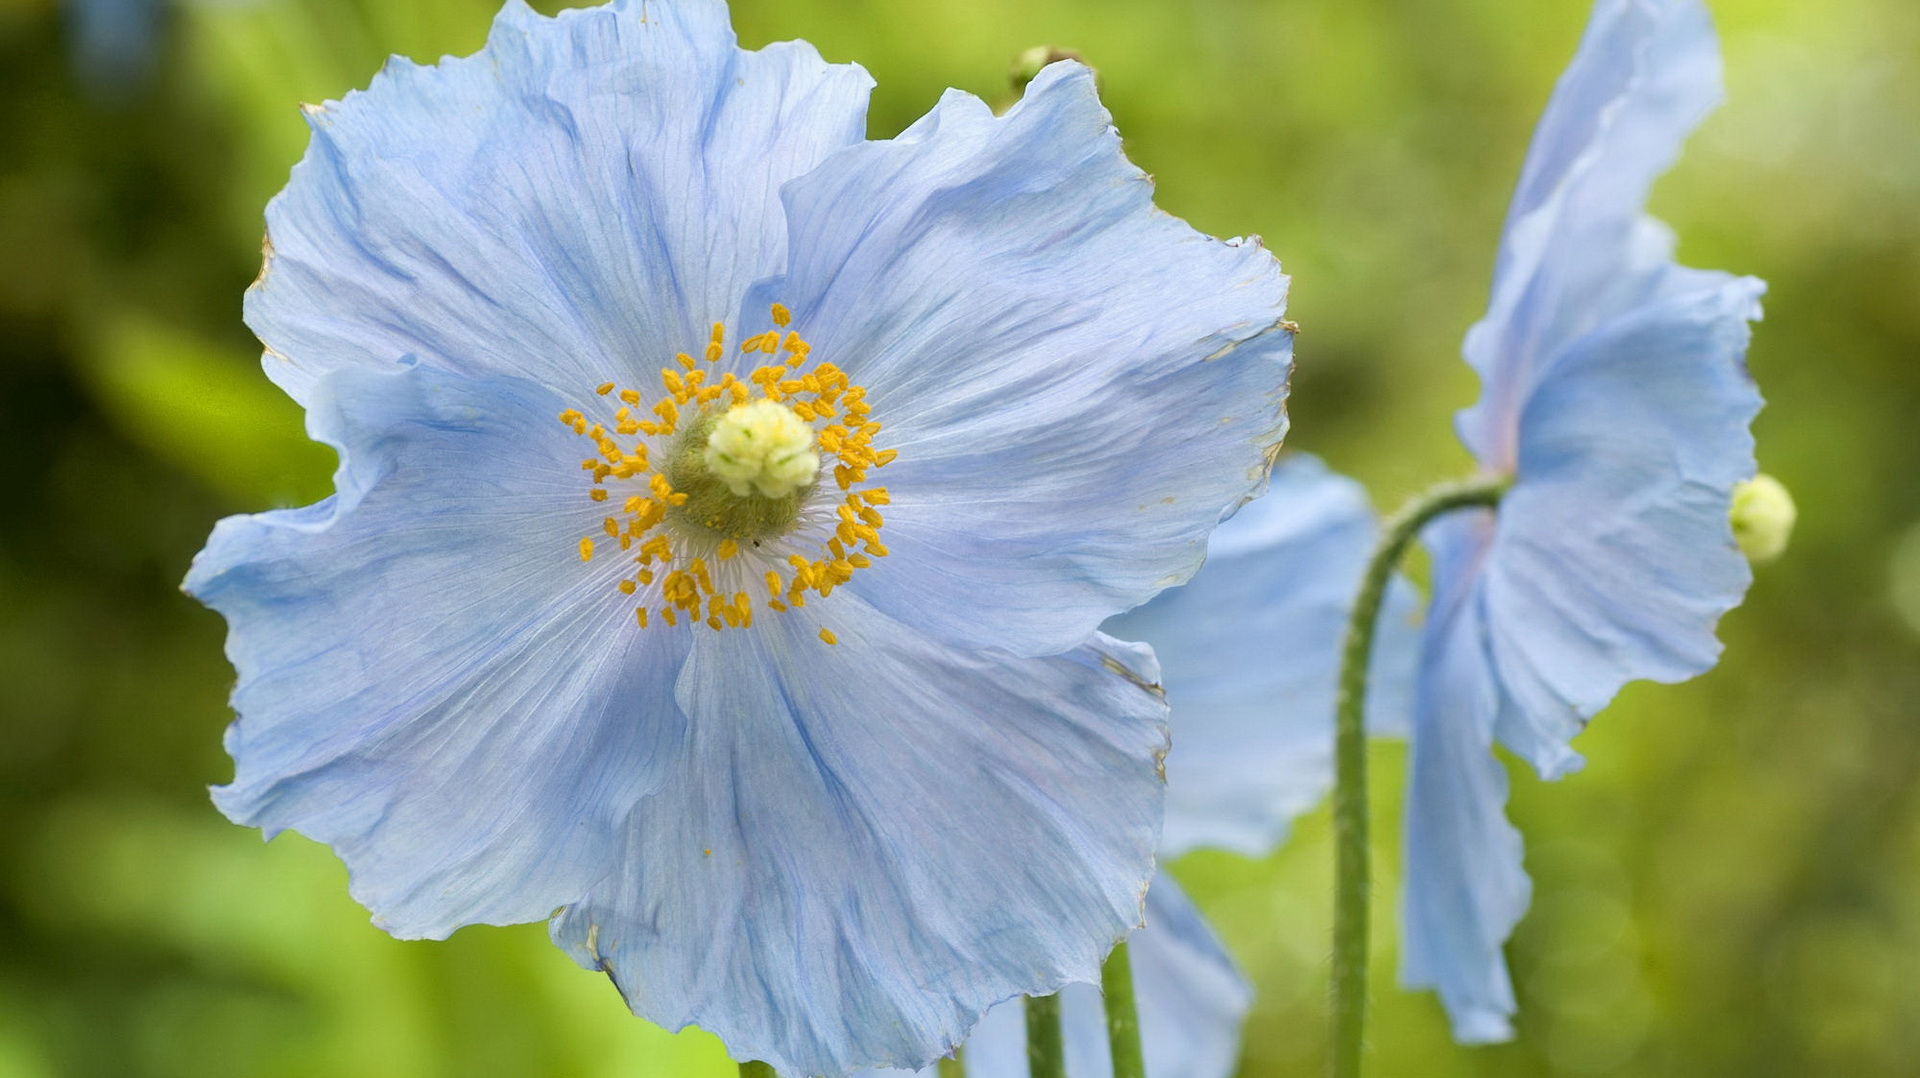 click to free download the wallpaper--Images of Flowers - A Light Blue Flower in Full Bloom, Yellow Stamen, Green Background, Great in Look 1920X1080 free wallpaper download